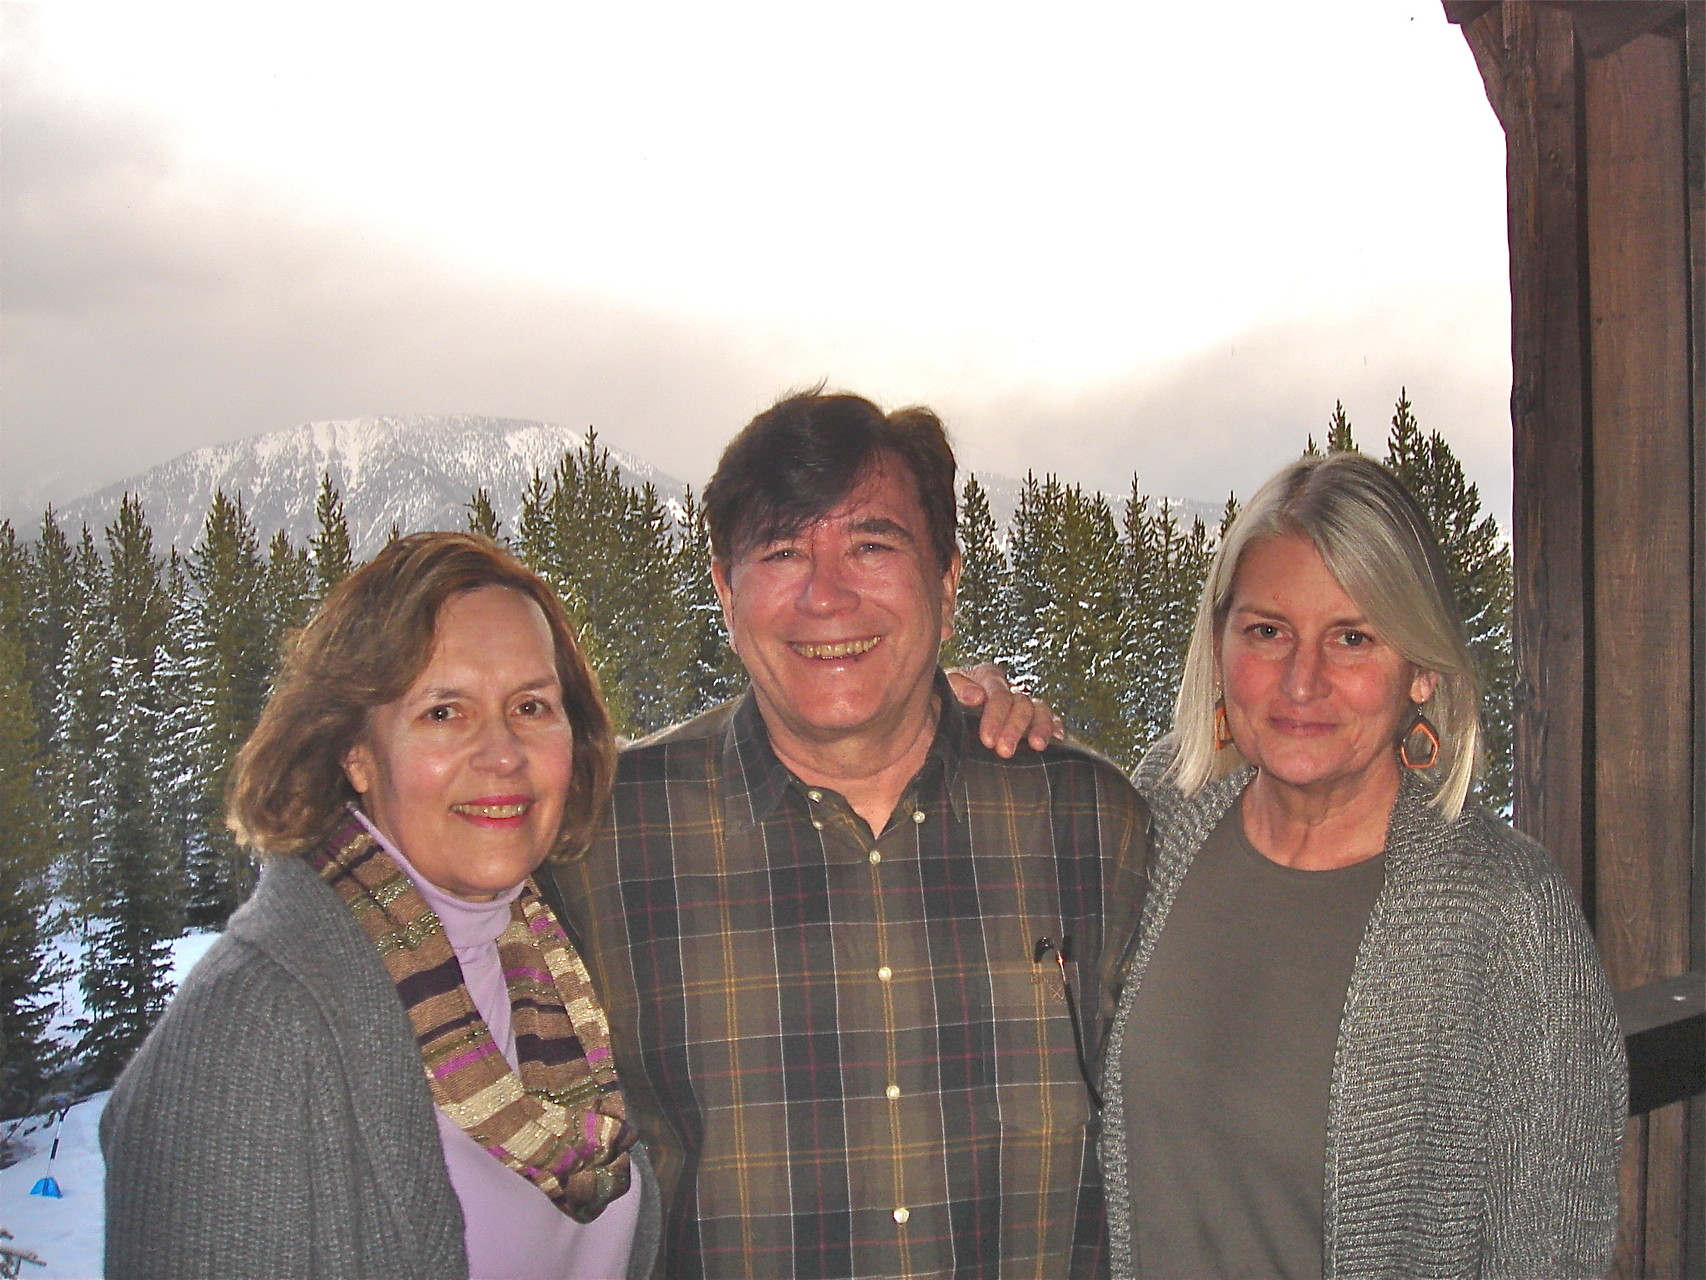 Lorraine, John, and Kathy Schmidt at Big Sky, Montana  March, 2015